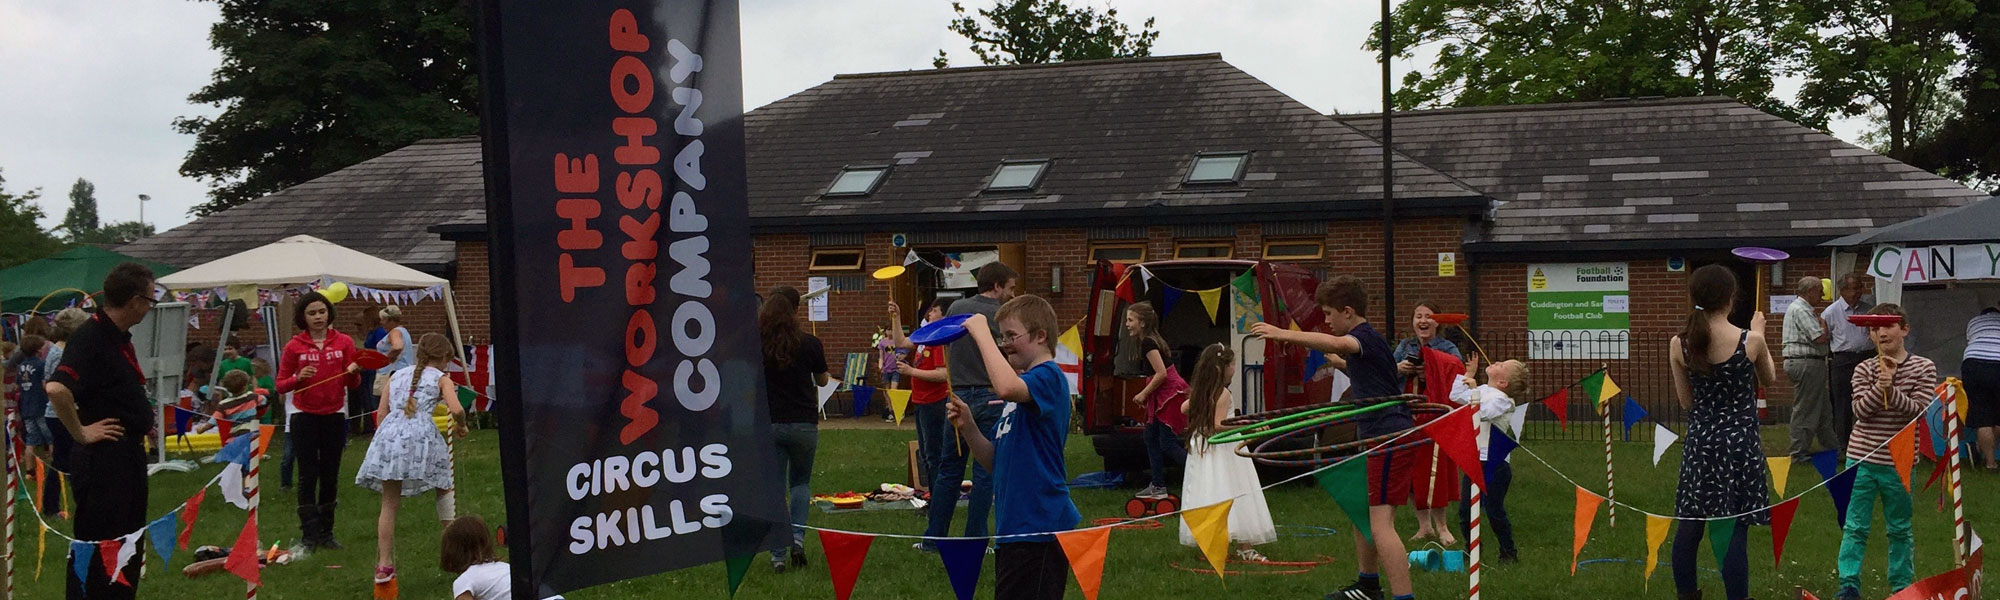 Circus skills at events